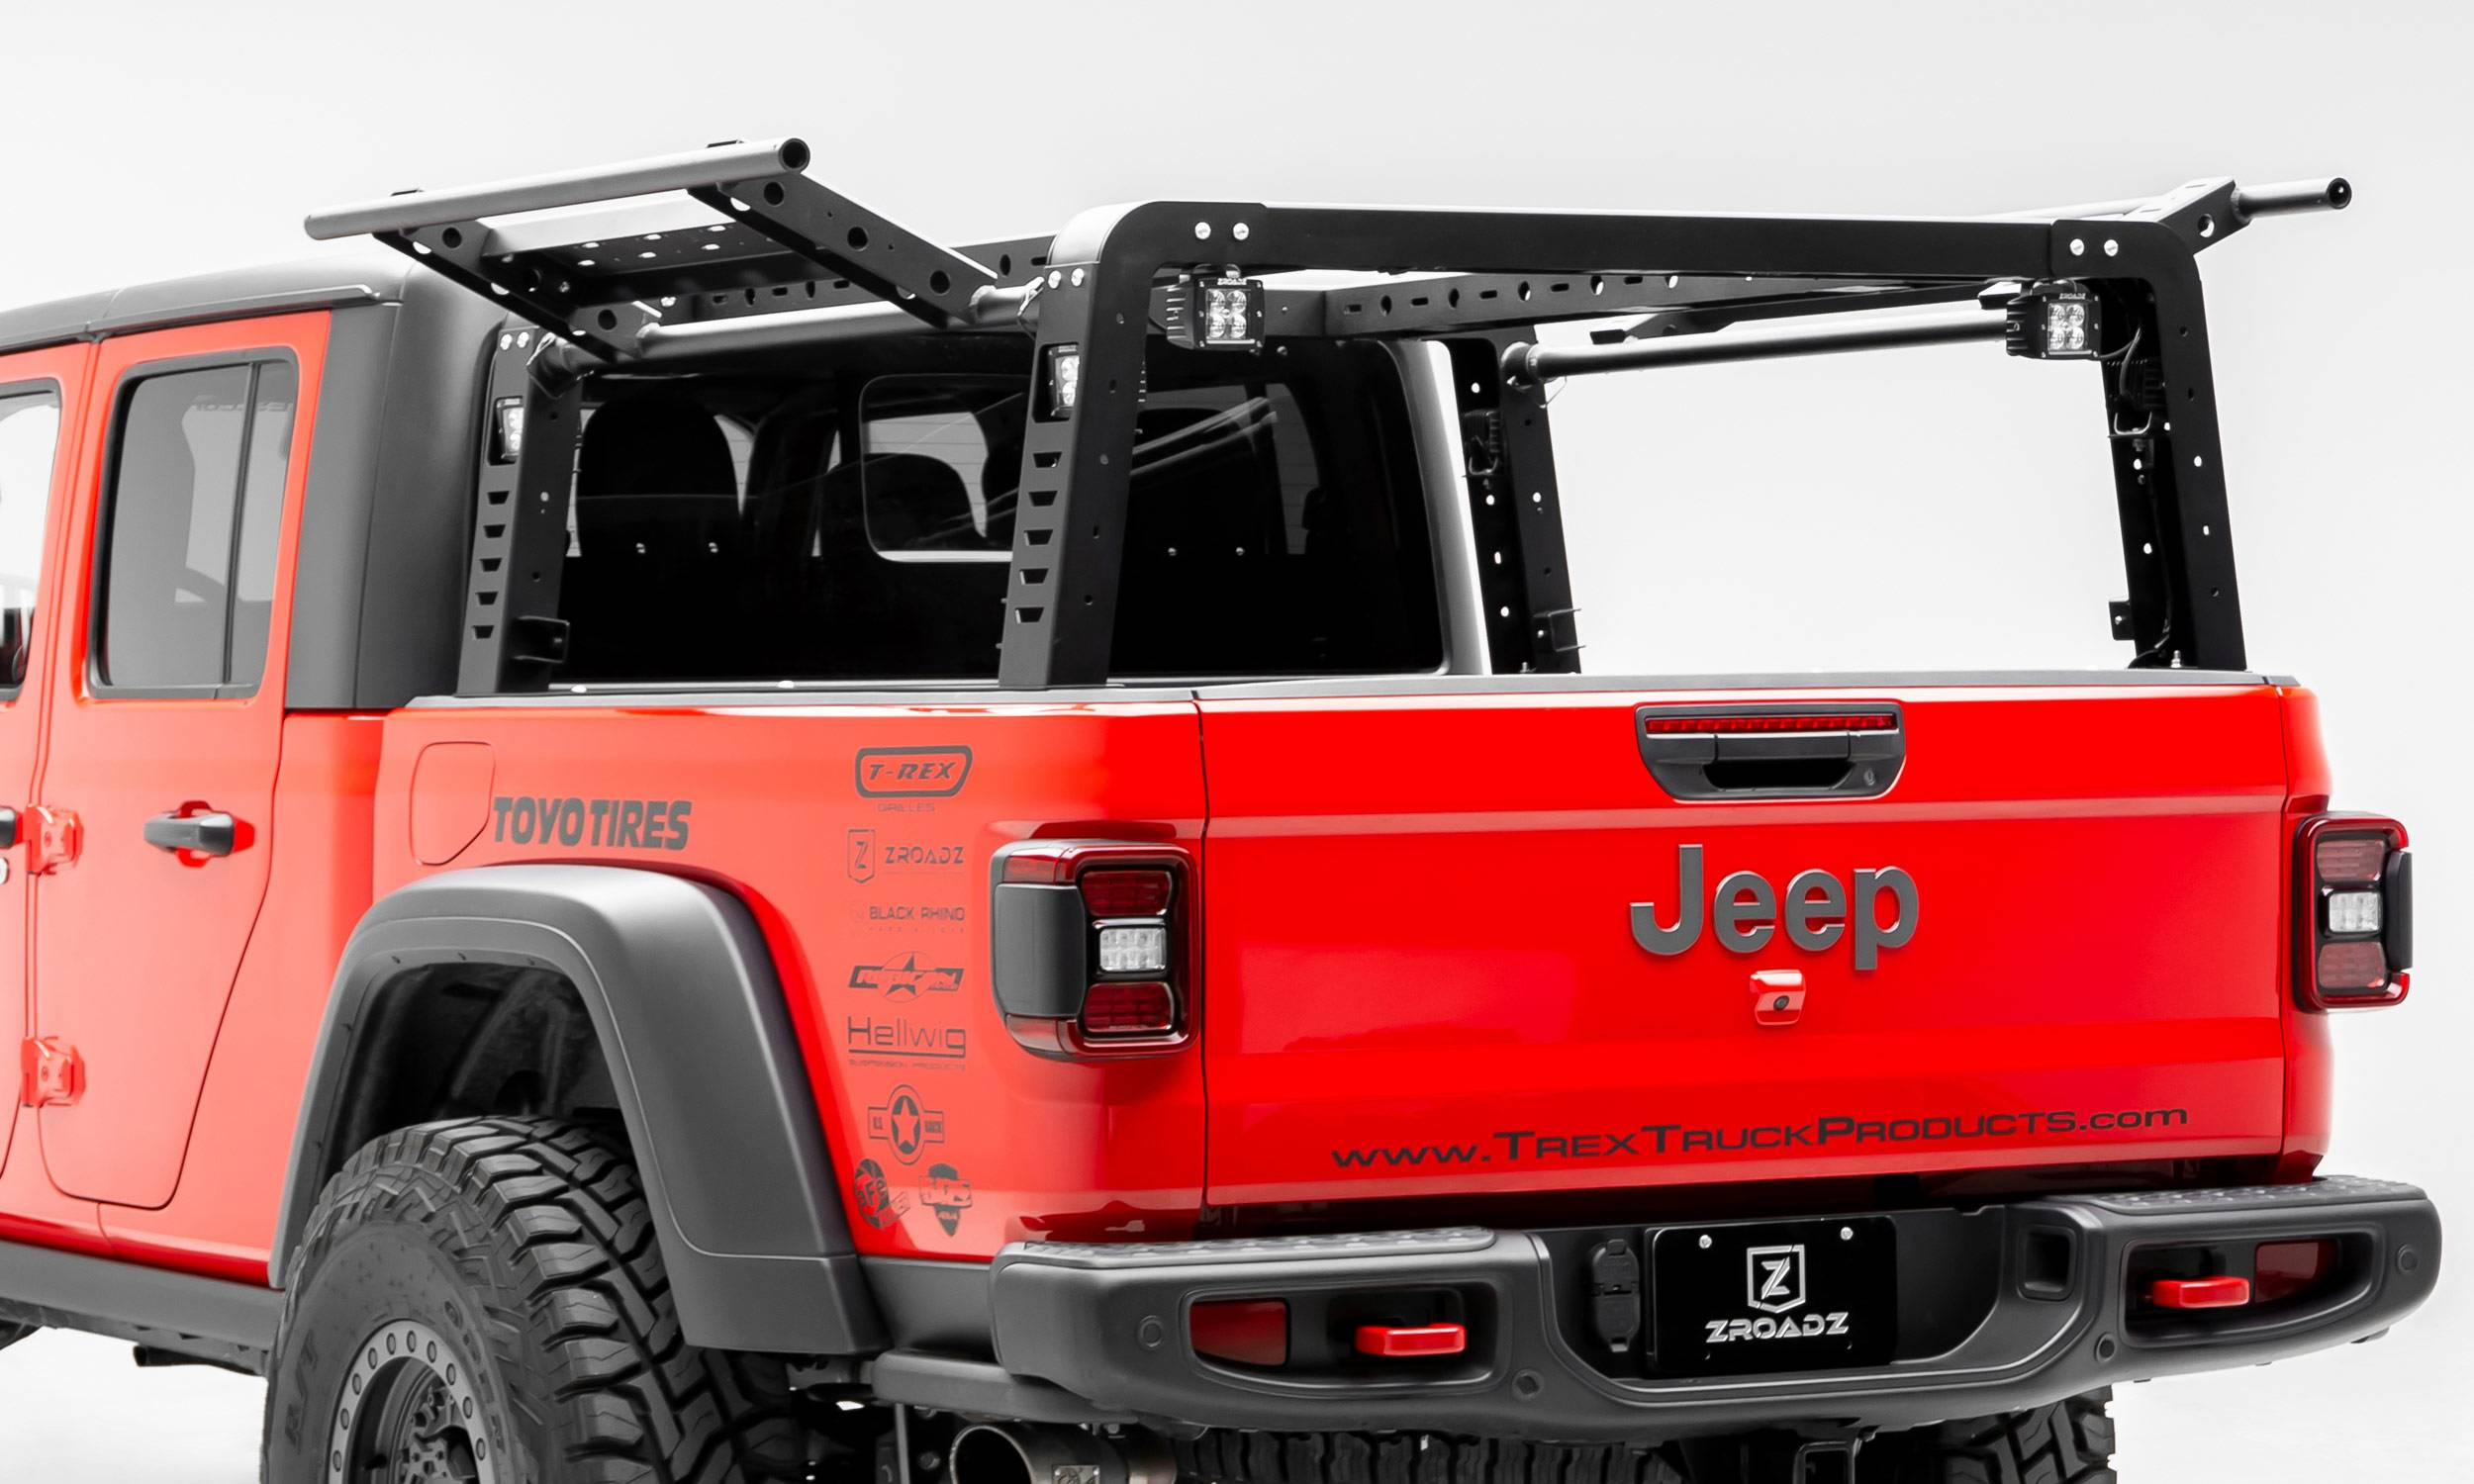 2019-2021 Jeep Gladiator Access Overland Rack With Two Lifting Side Gates, For use on Factory Trail